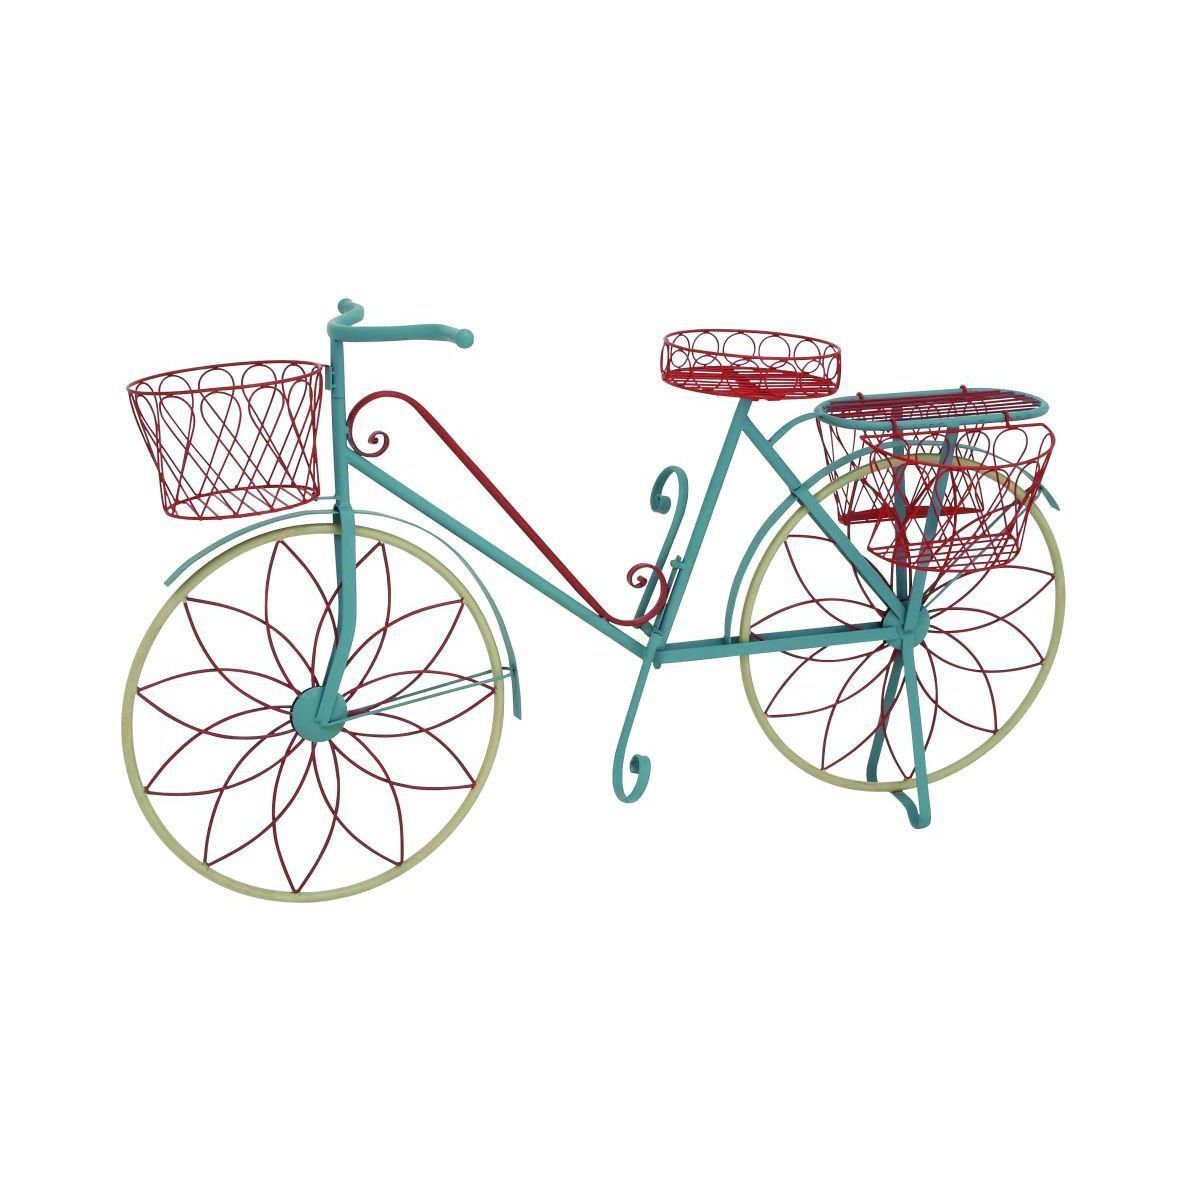 Studio 350 Metal Bicycle Plant Stand (MTL Bicycle Plnt Stnd 54W, 32u0027H),  Blue (Iron) #28946, Outdoor Décor